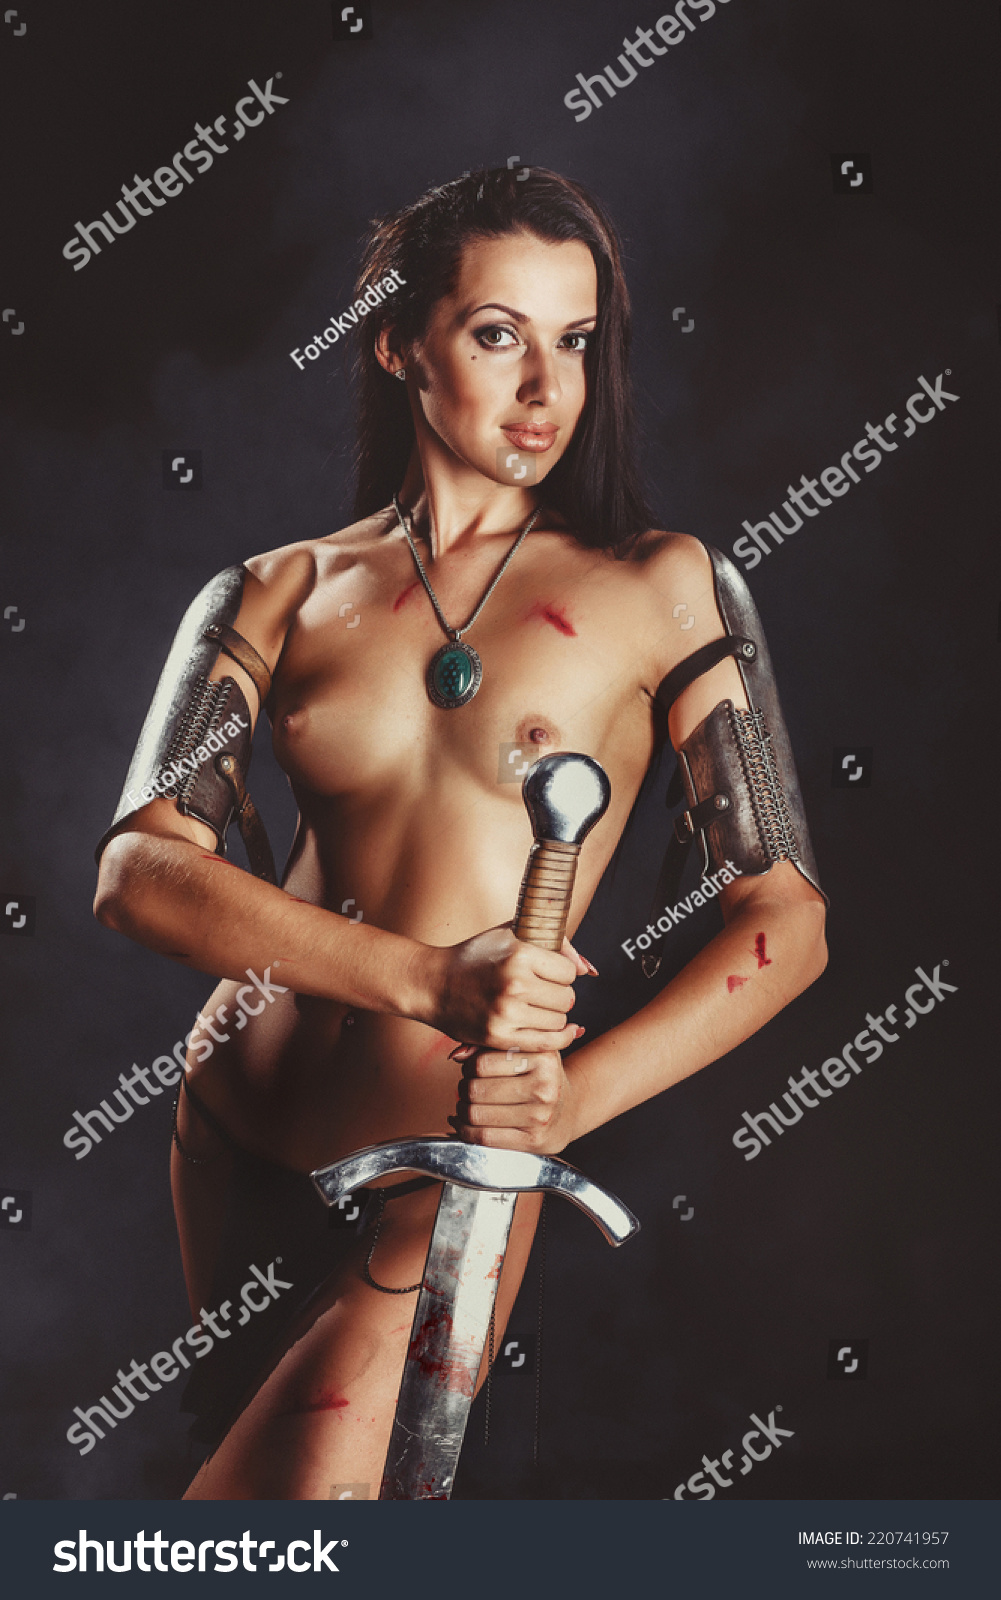 Naked warrior women tumblr nude photo